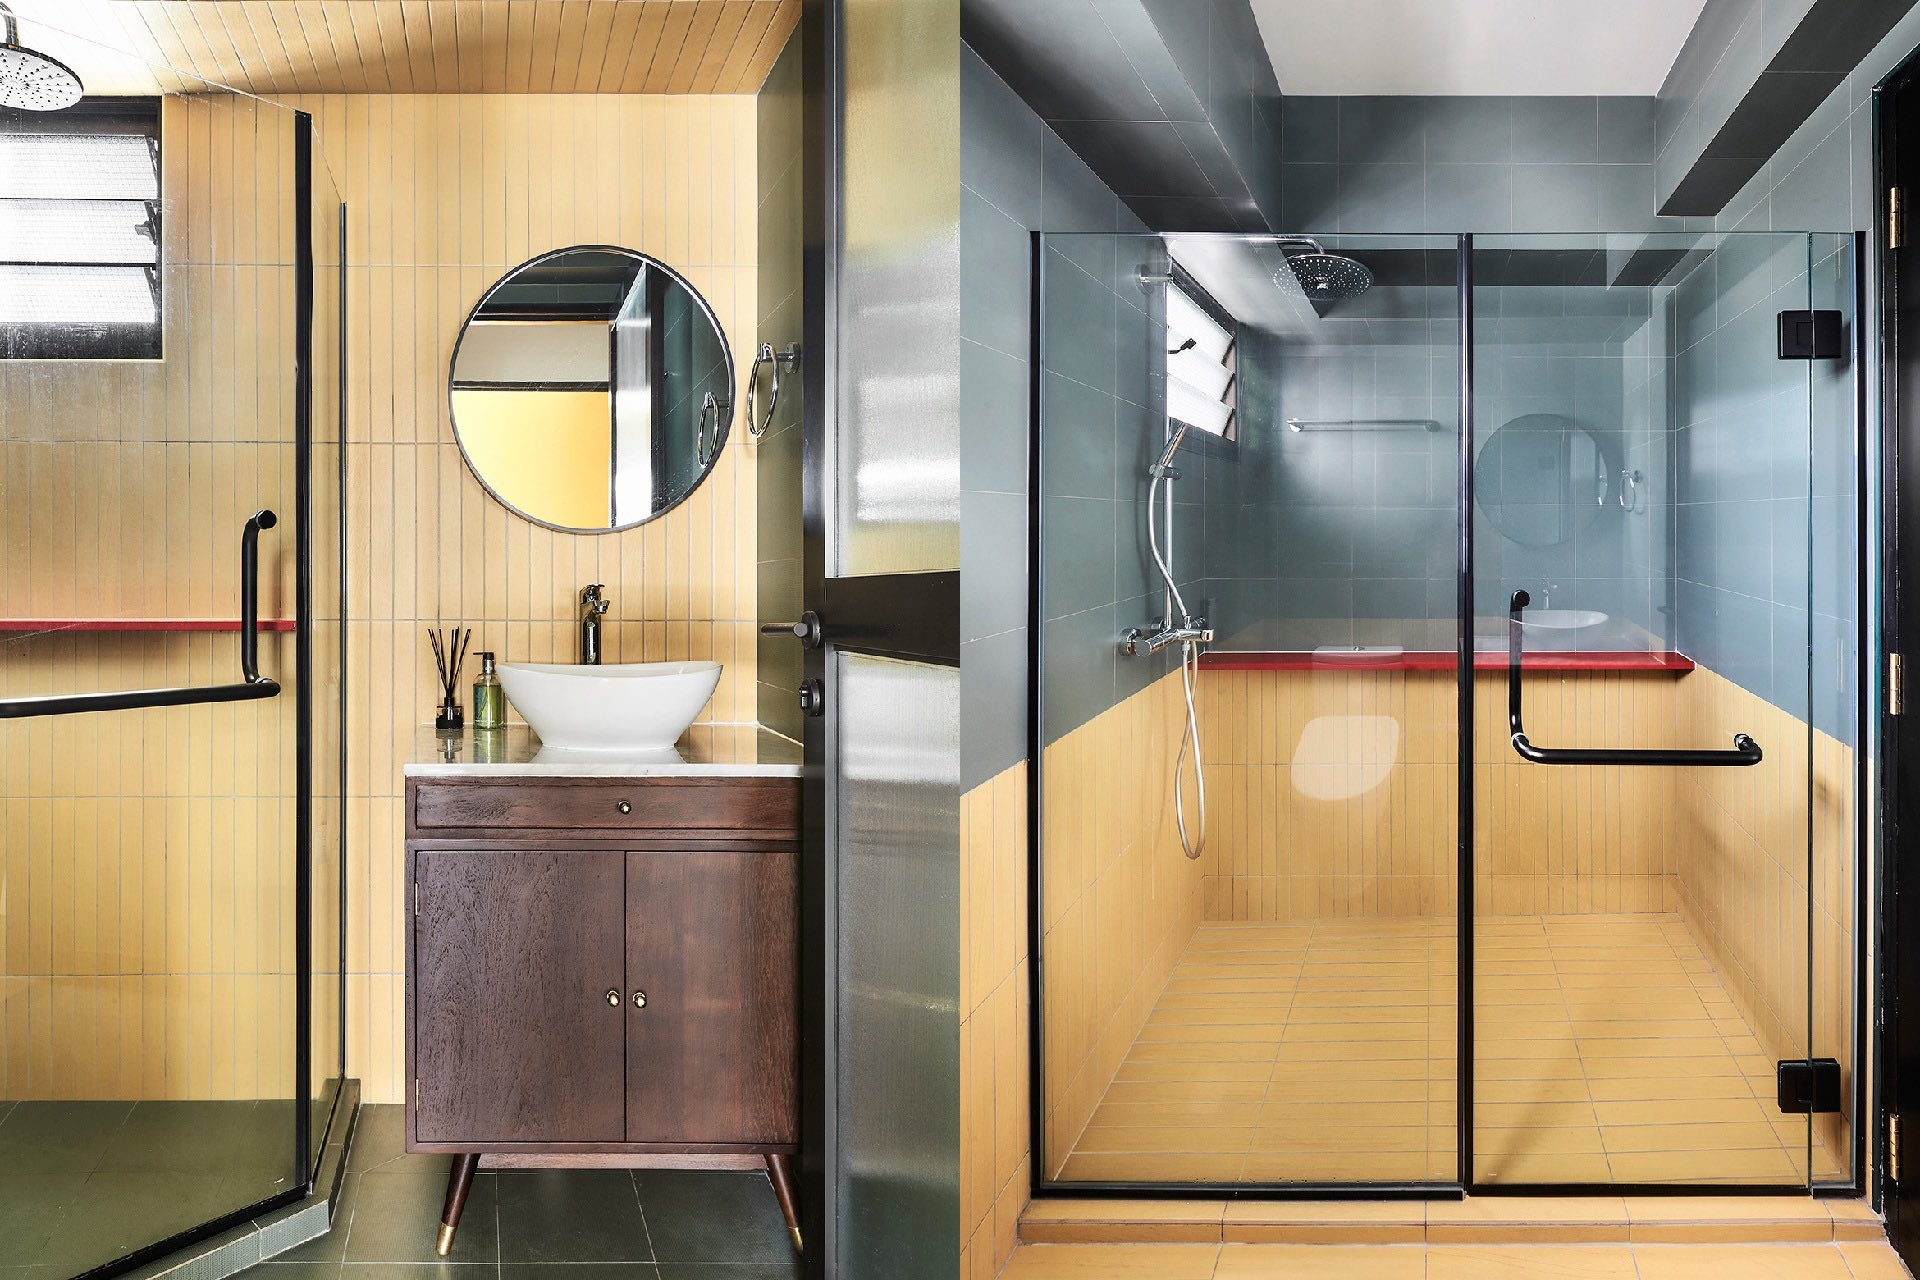 Combination of wood furniture and vibrant colored tiles in the modern Retro bathroom space